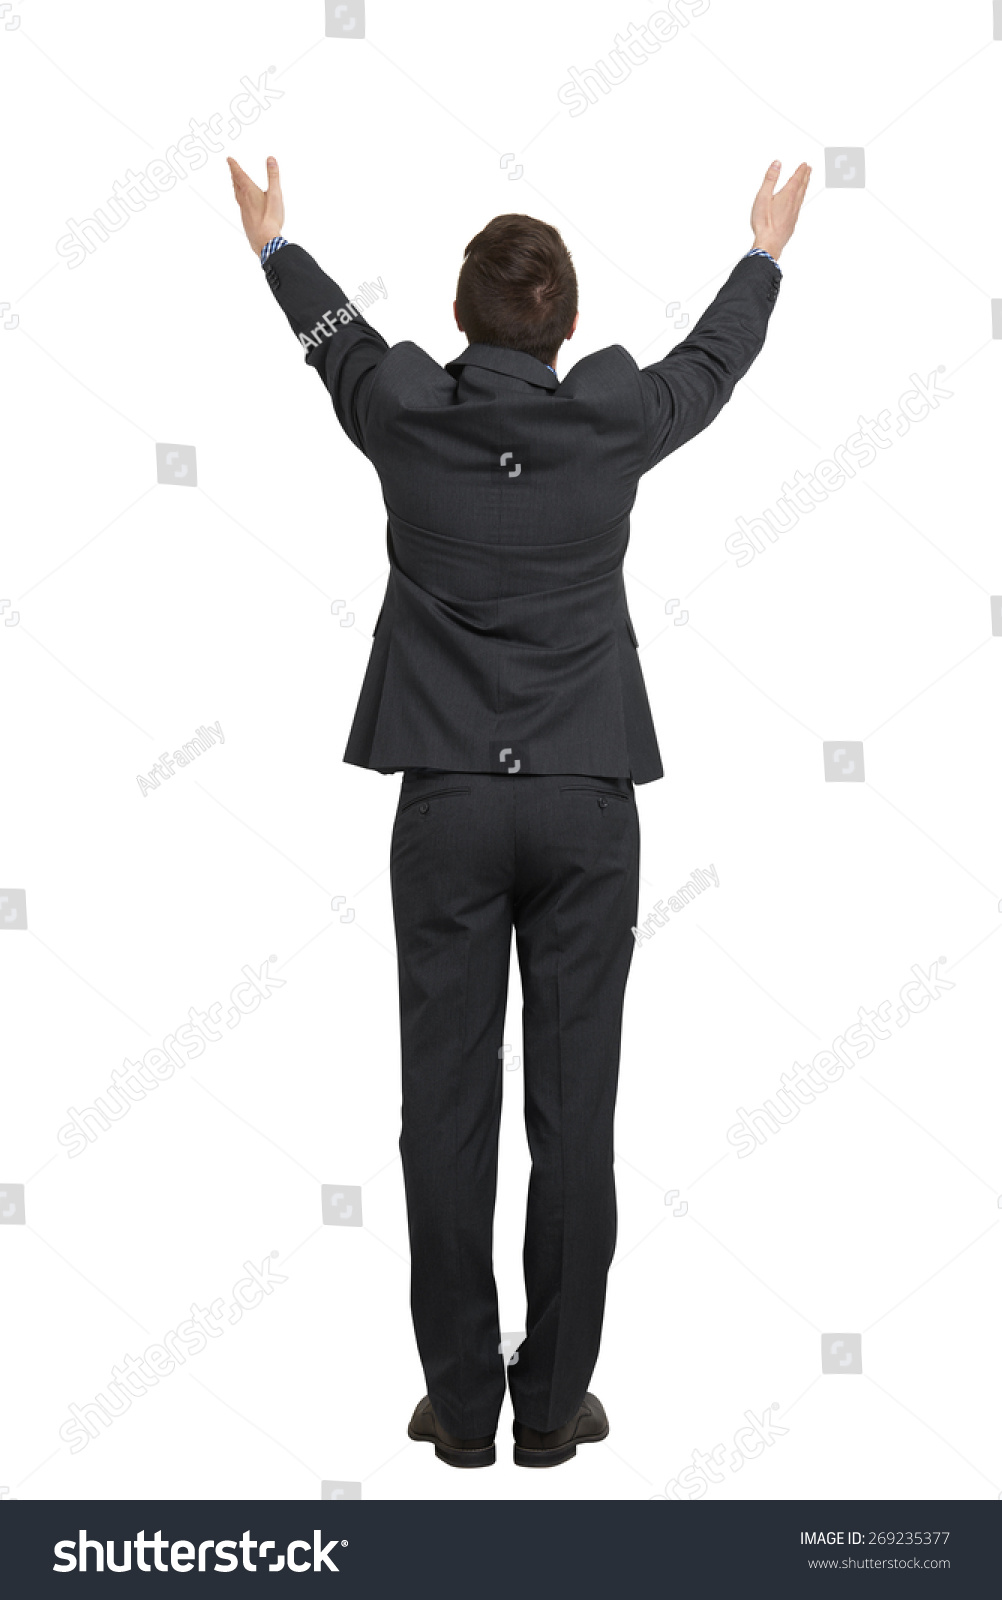 Back View Man Black Suit Raising Stock Photo 269235377 ...